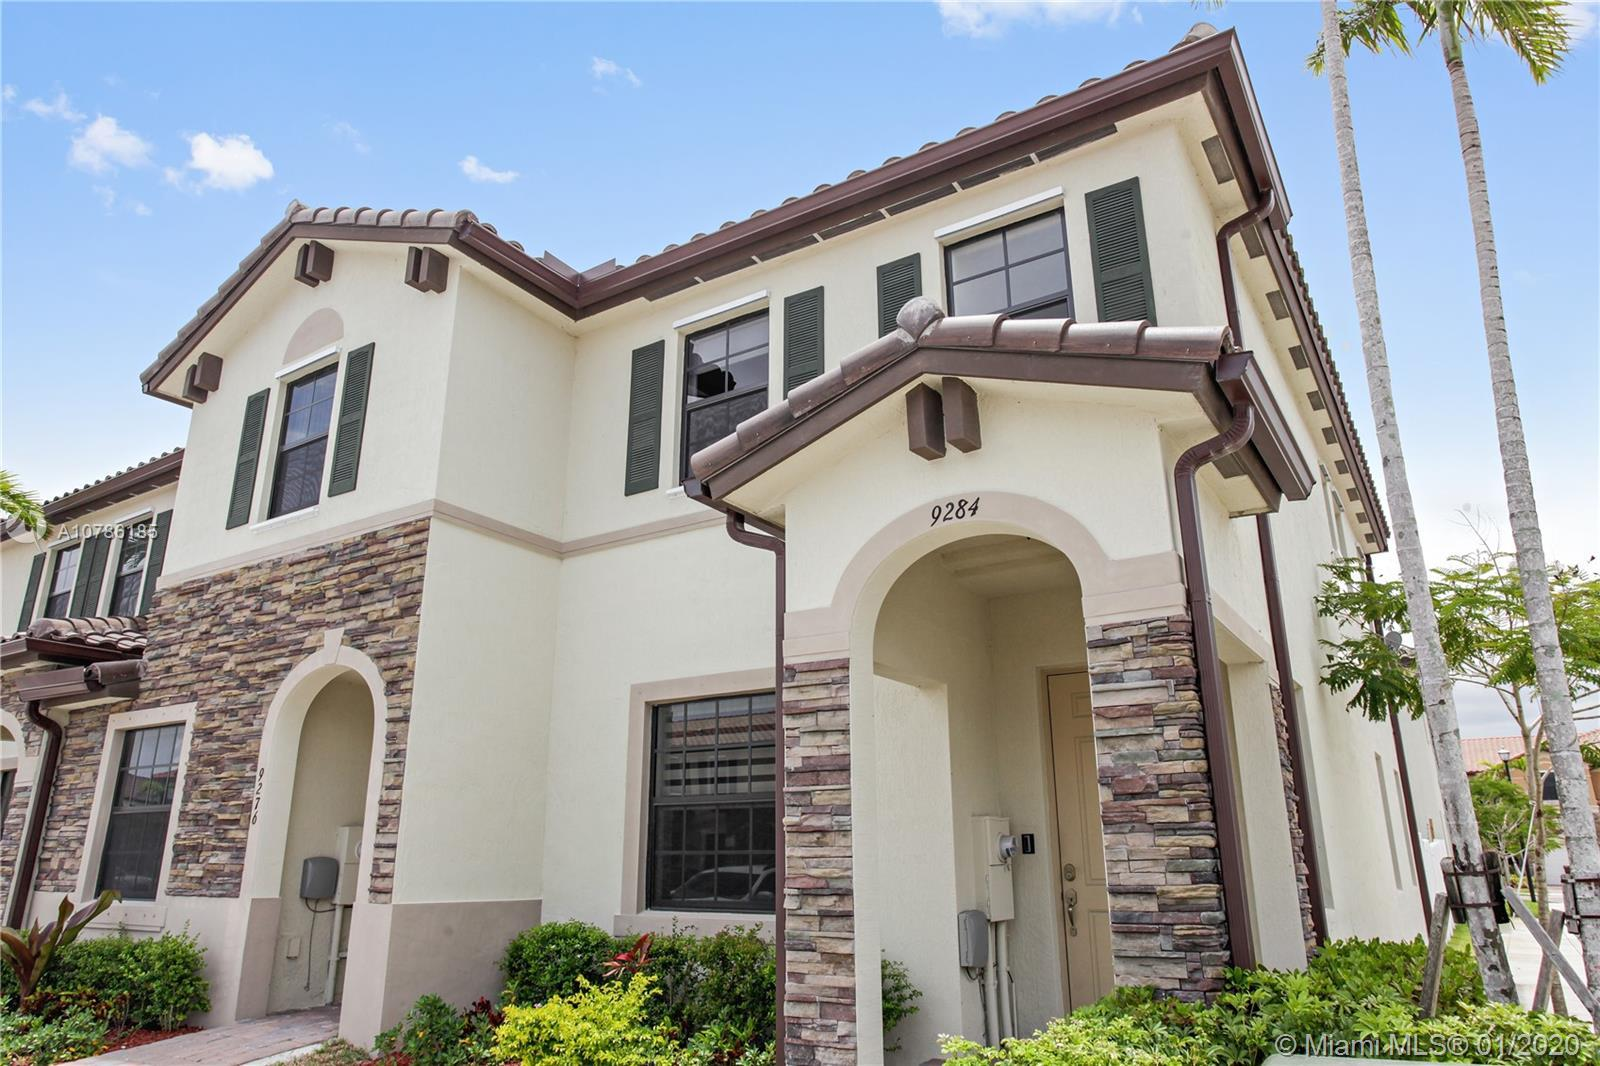 Bonterra is west of Miami Lakes, close to I-75 and the Turnpike and just off Okeechobee Rd. Also con